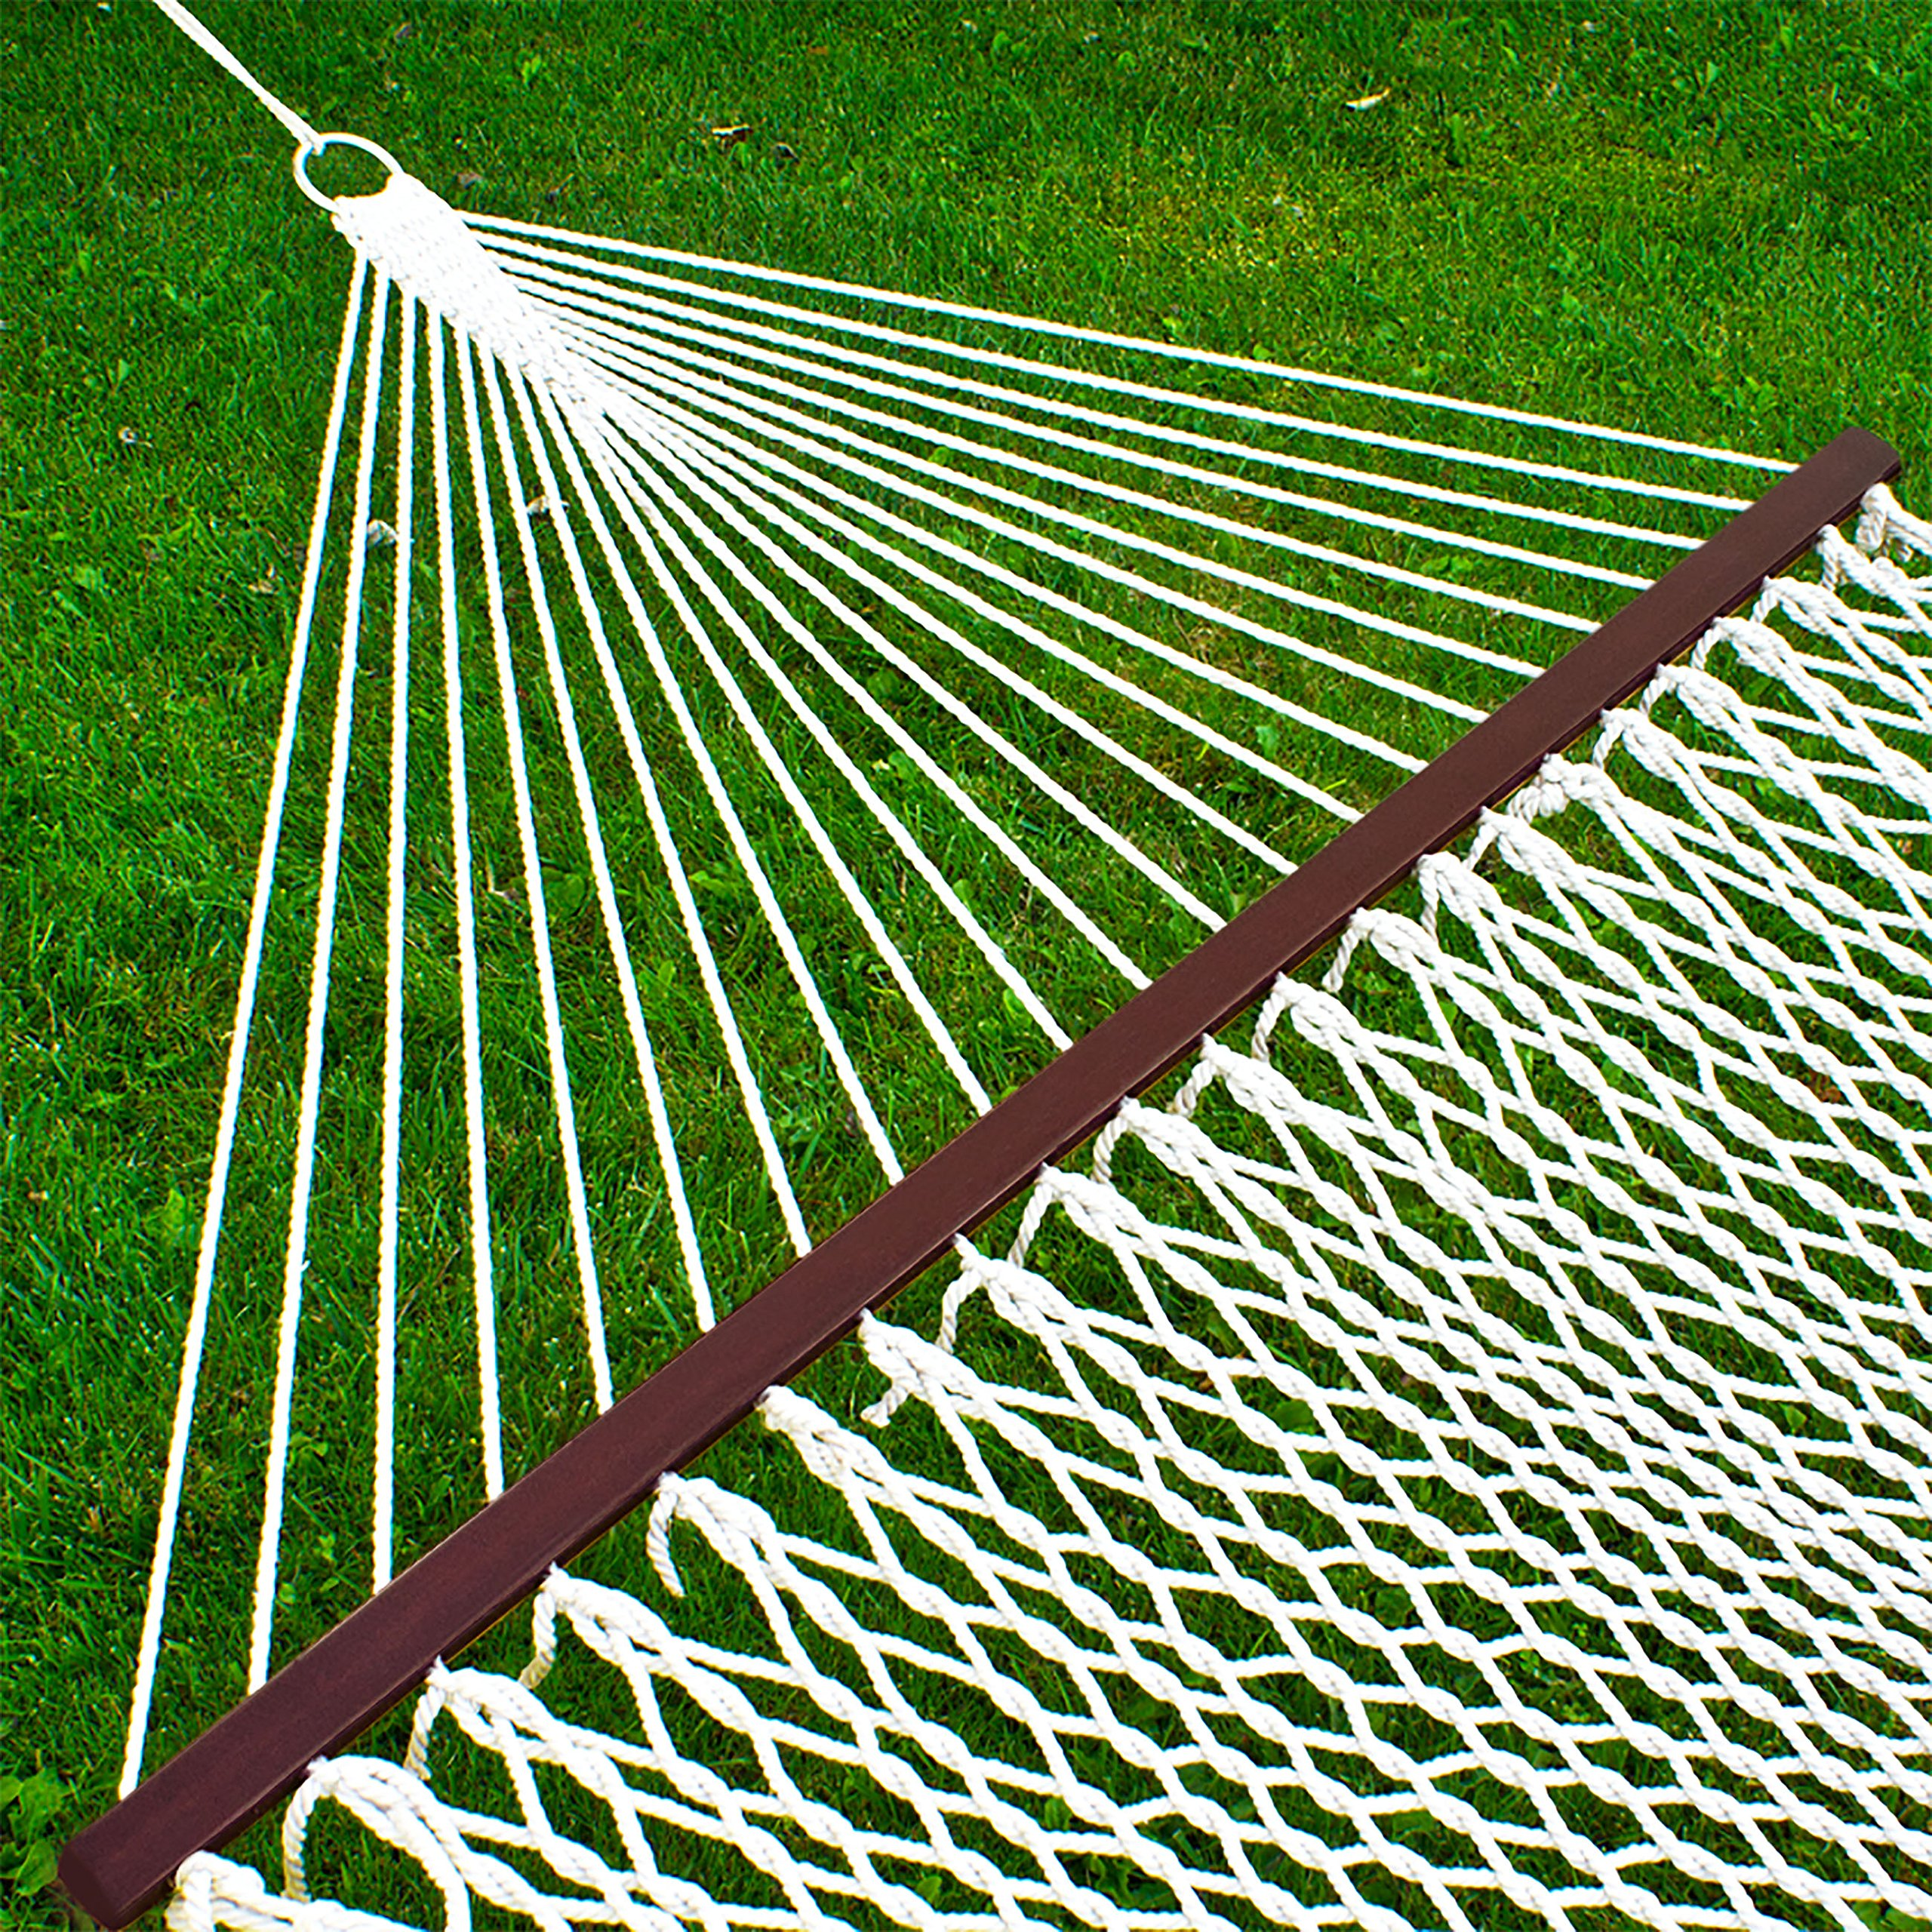 Best Choice Products Woven Cotton Rope Double 2-Person Hammock for Porch, Backyard w/Wooden Spreader Bars, Carrying Case - White